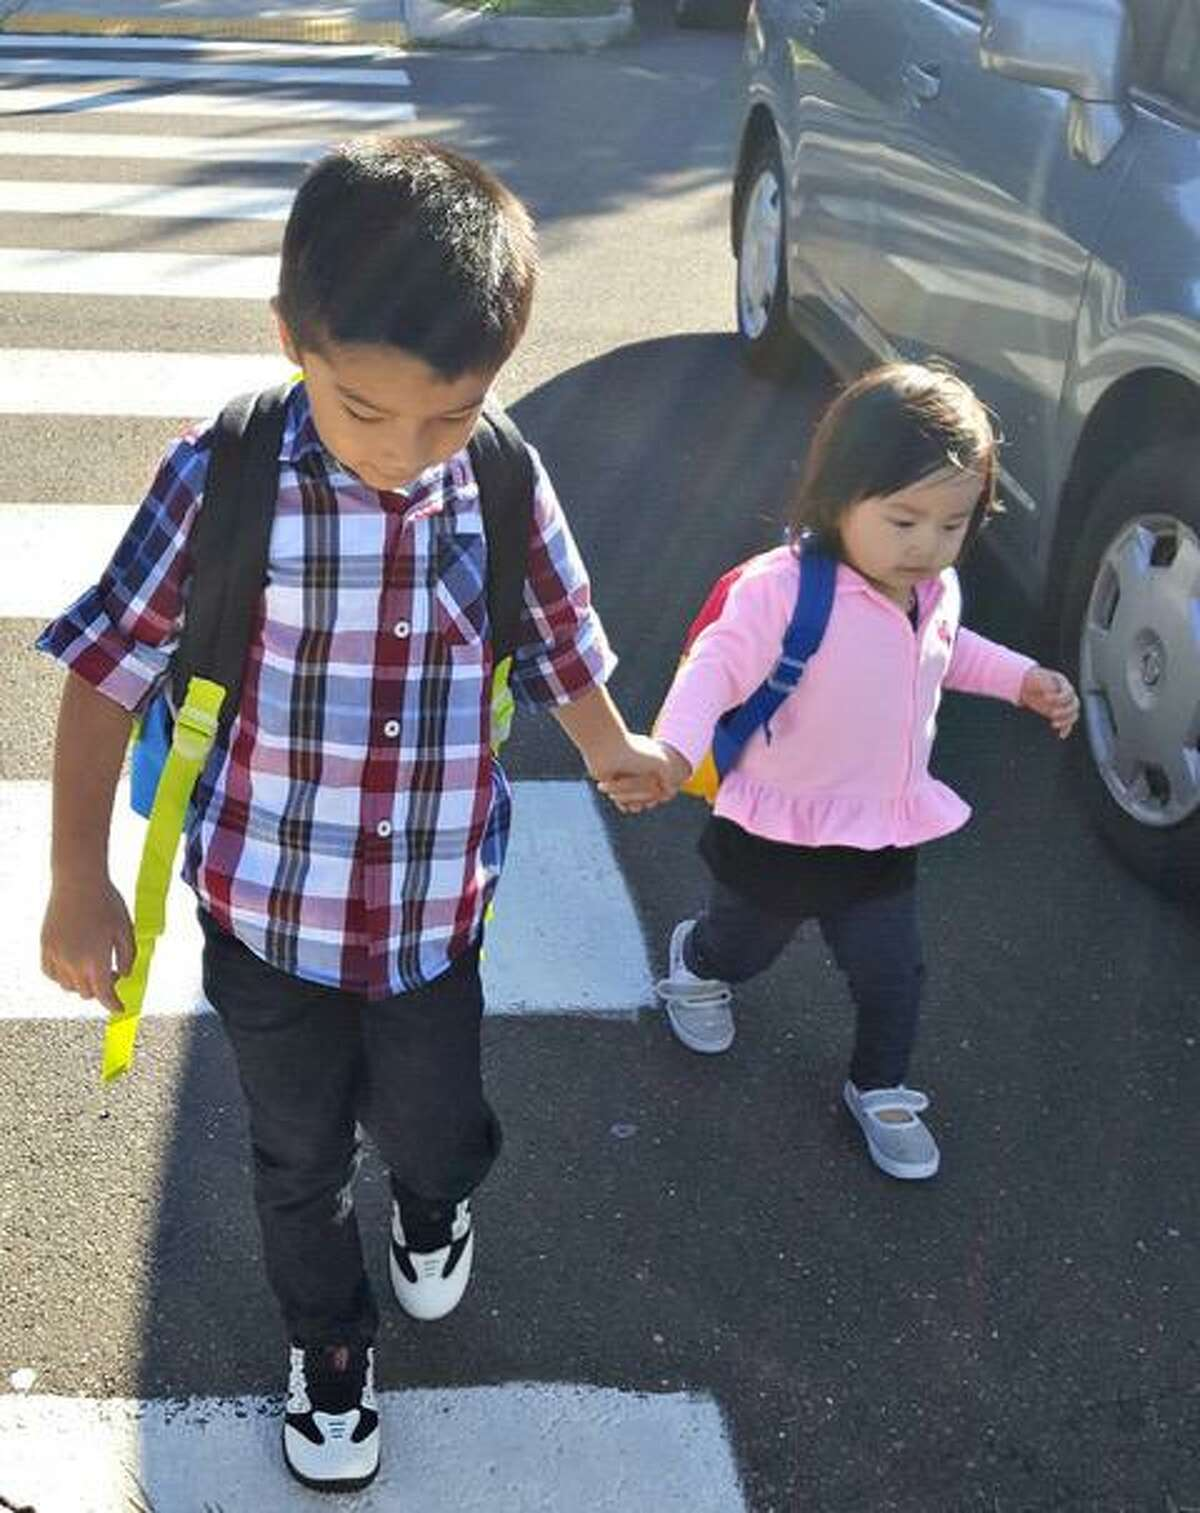 Two IRIS students are prepared for school with their backpacks.